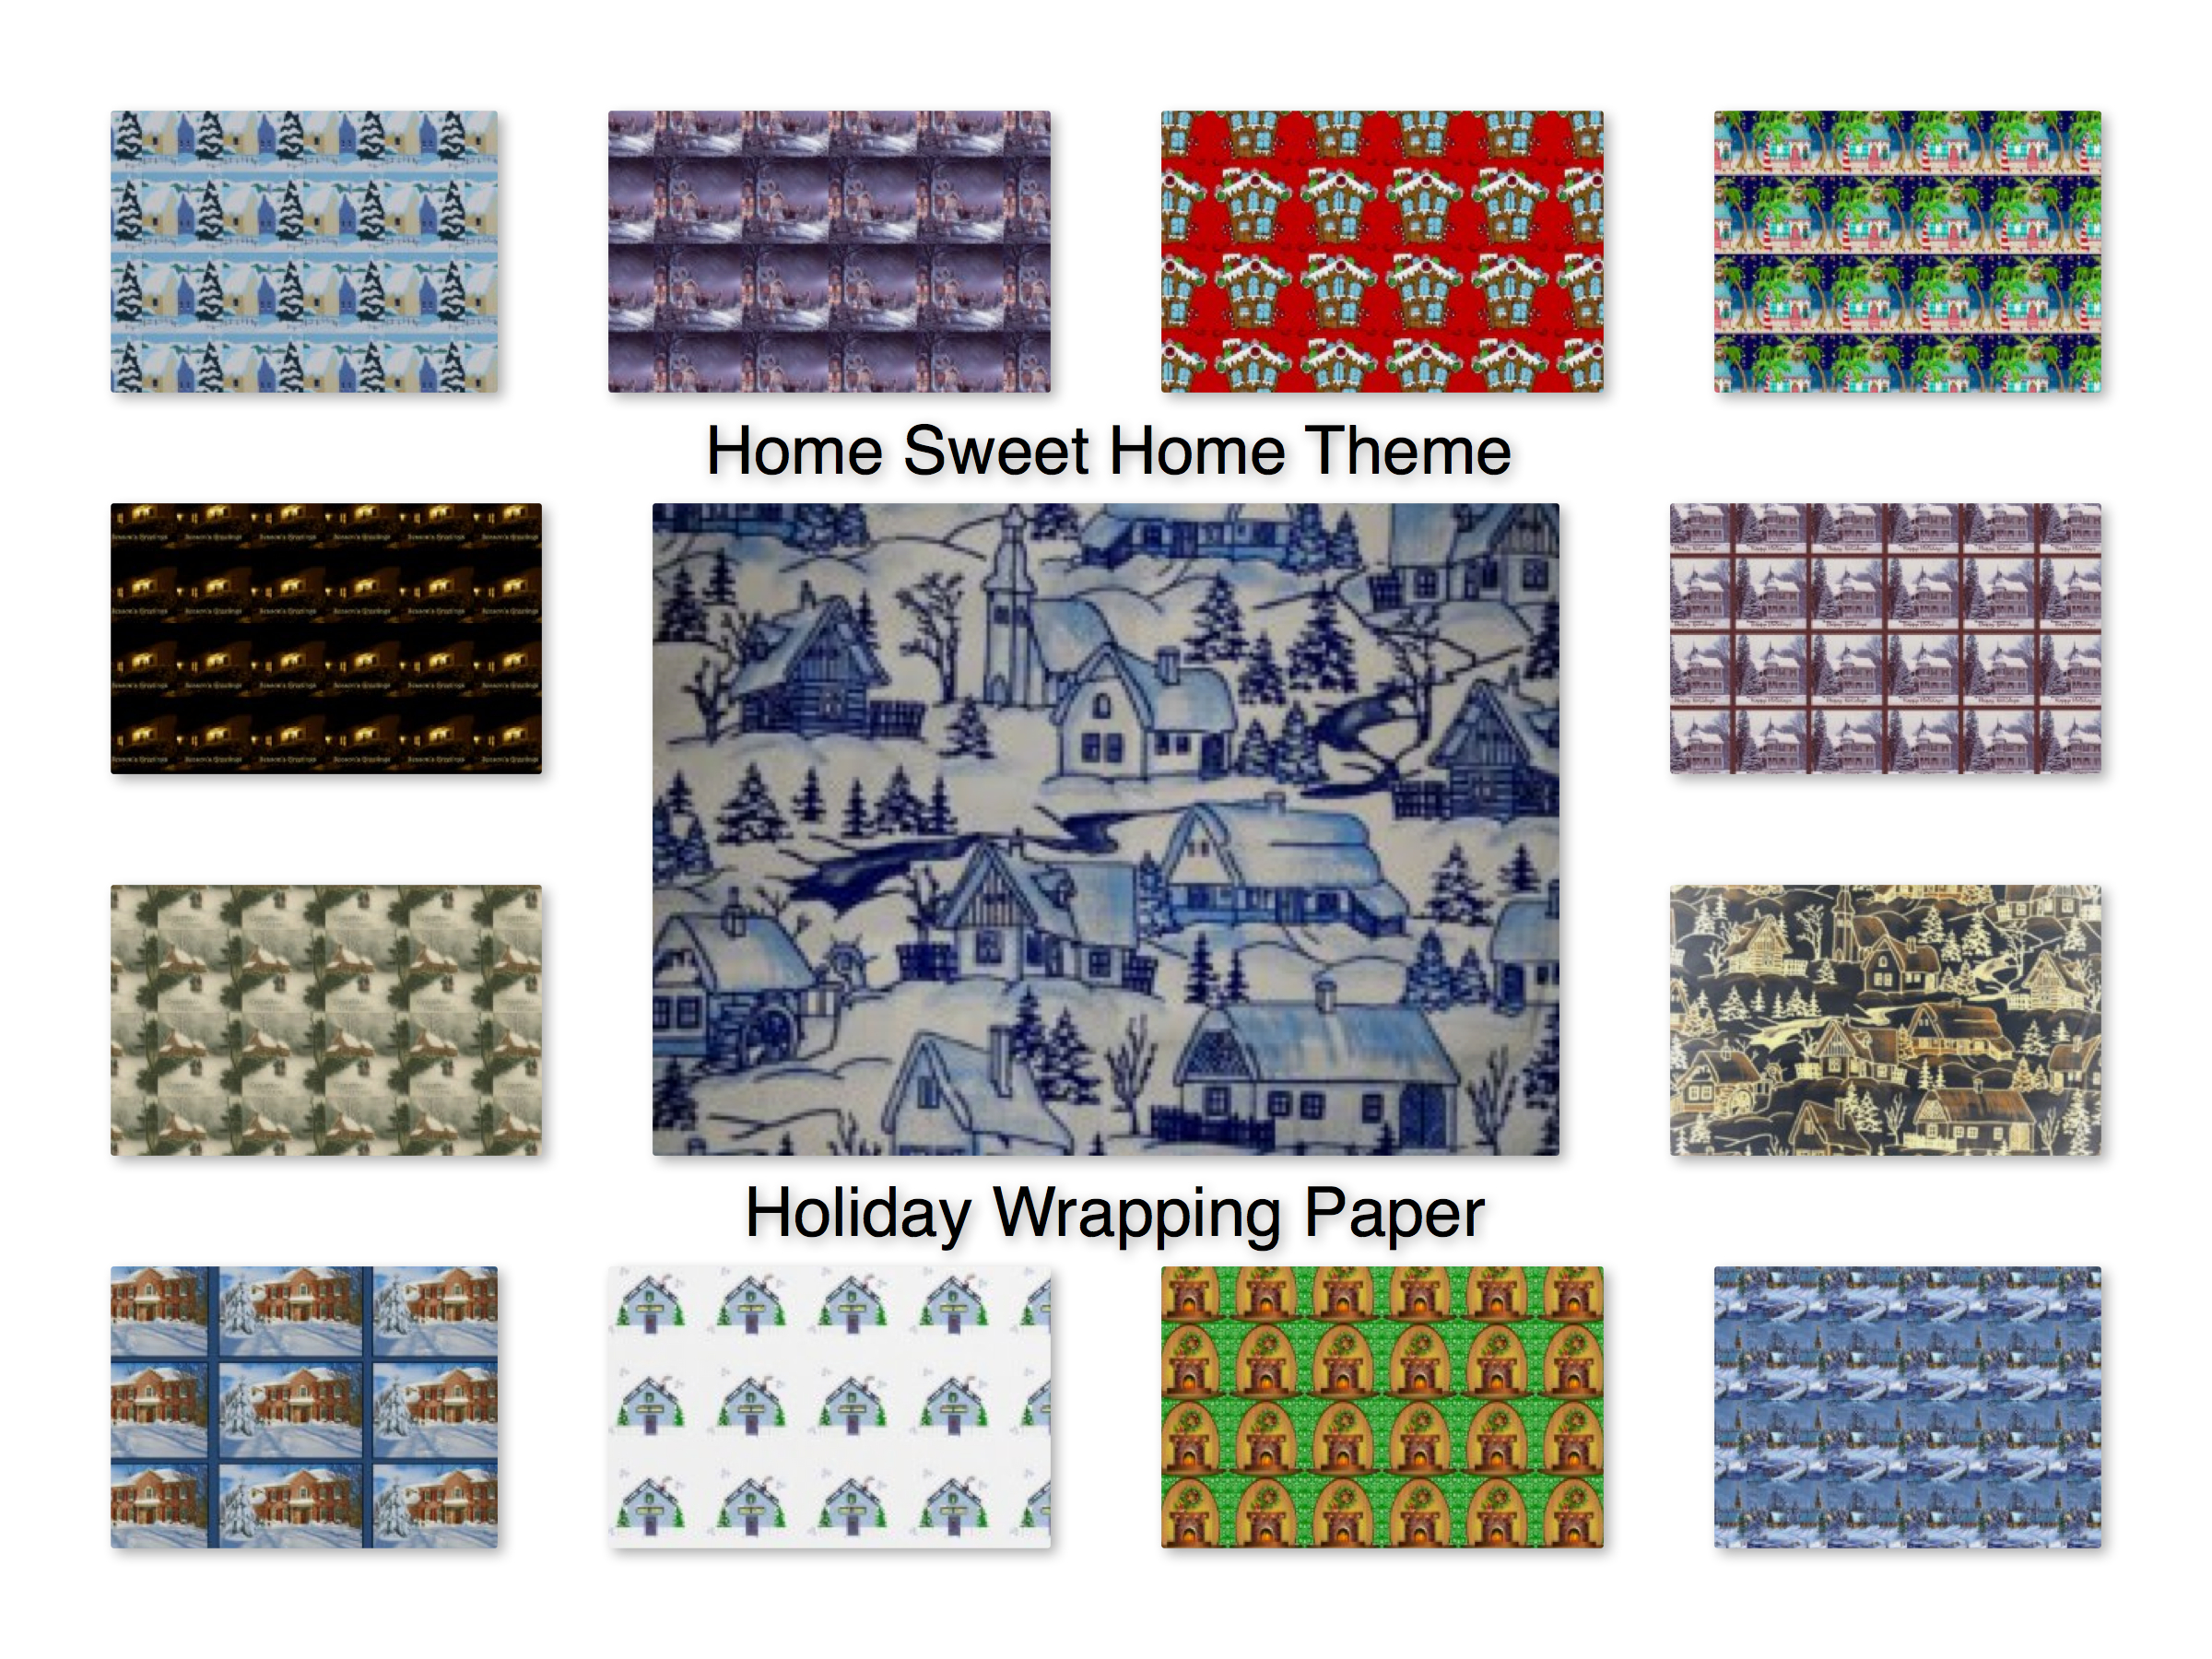 Home Sweet Home Theme Holiday Wrapping Paper for Realtors